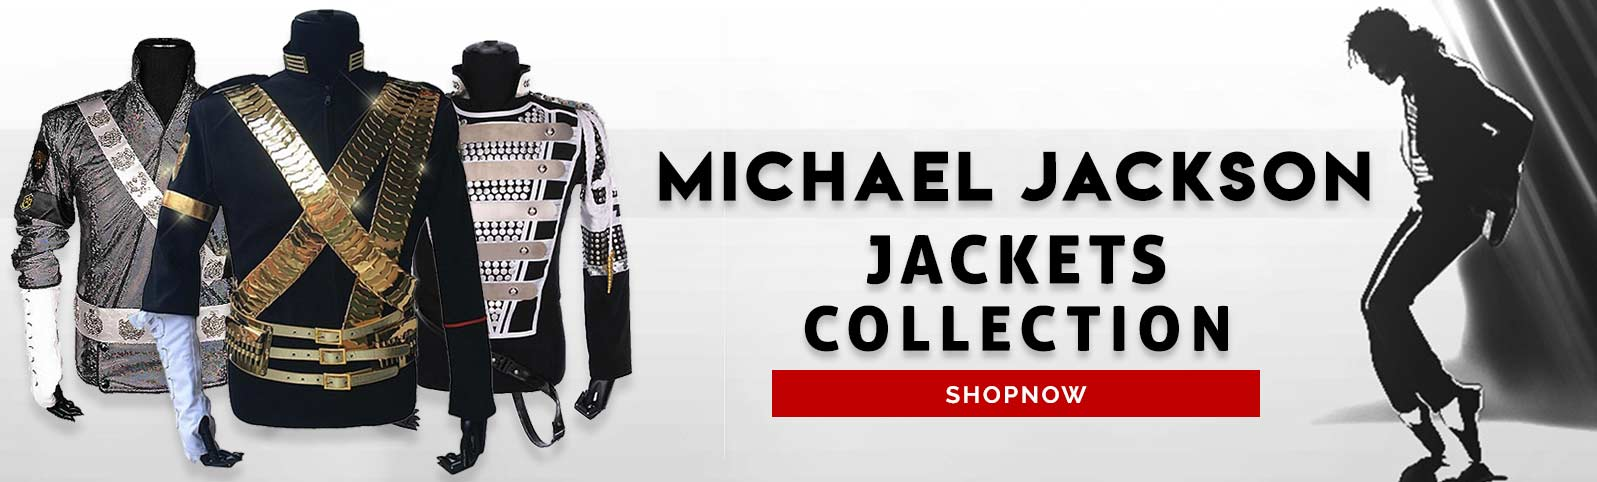 Michael Jackson Jacket Category Front Page Banner